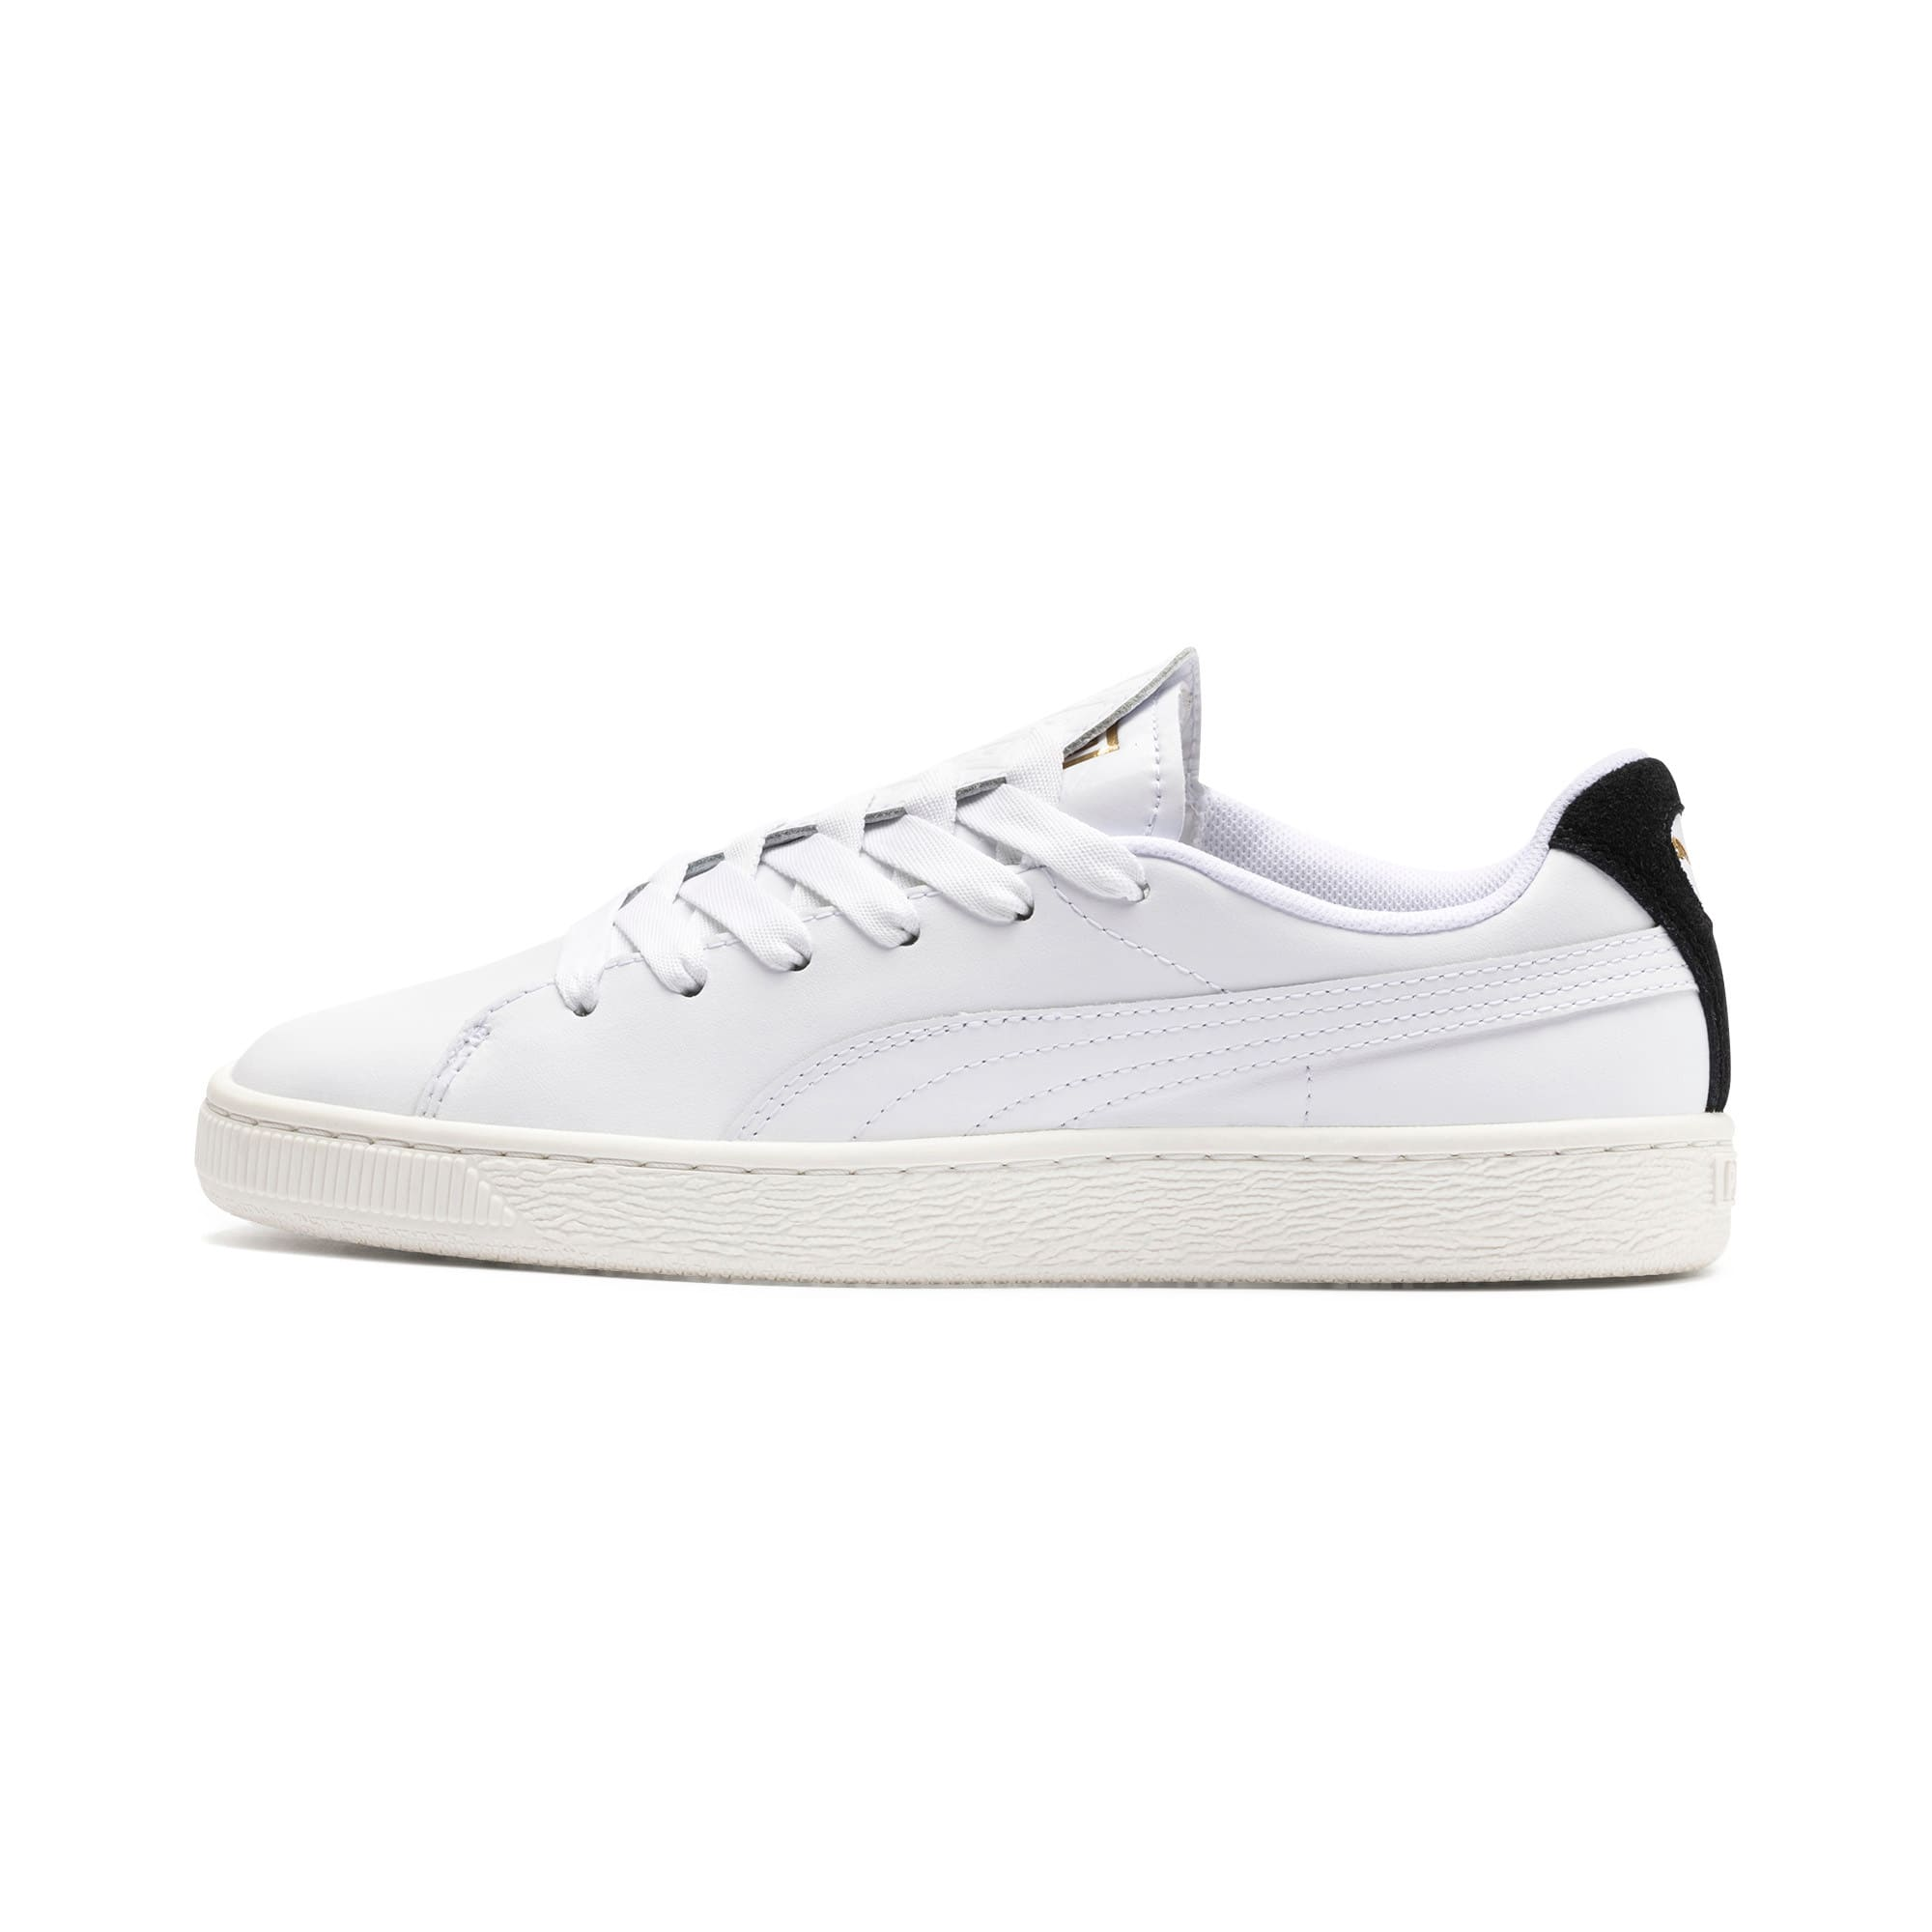 Thumbnail 1 of Basket Crush Deboss Women's Trainers, Puma White-Puma Team Gold, medium